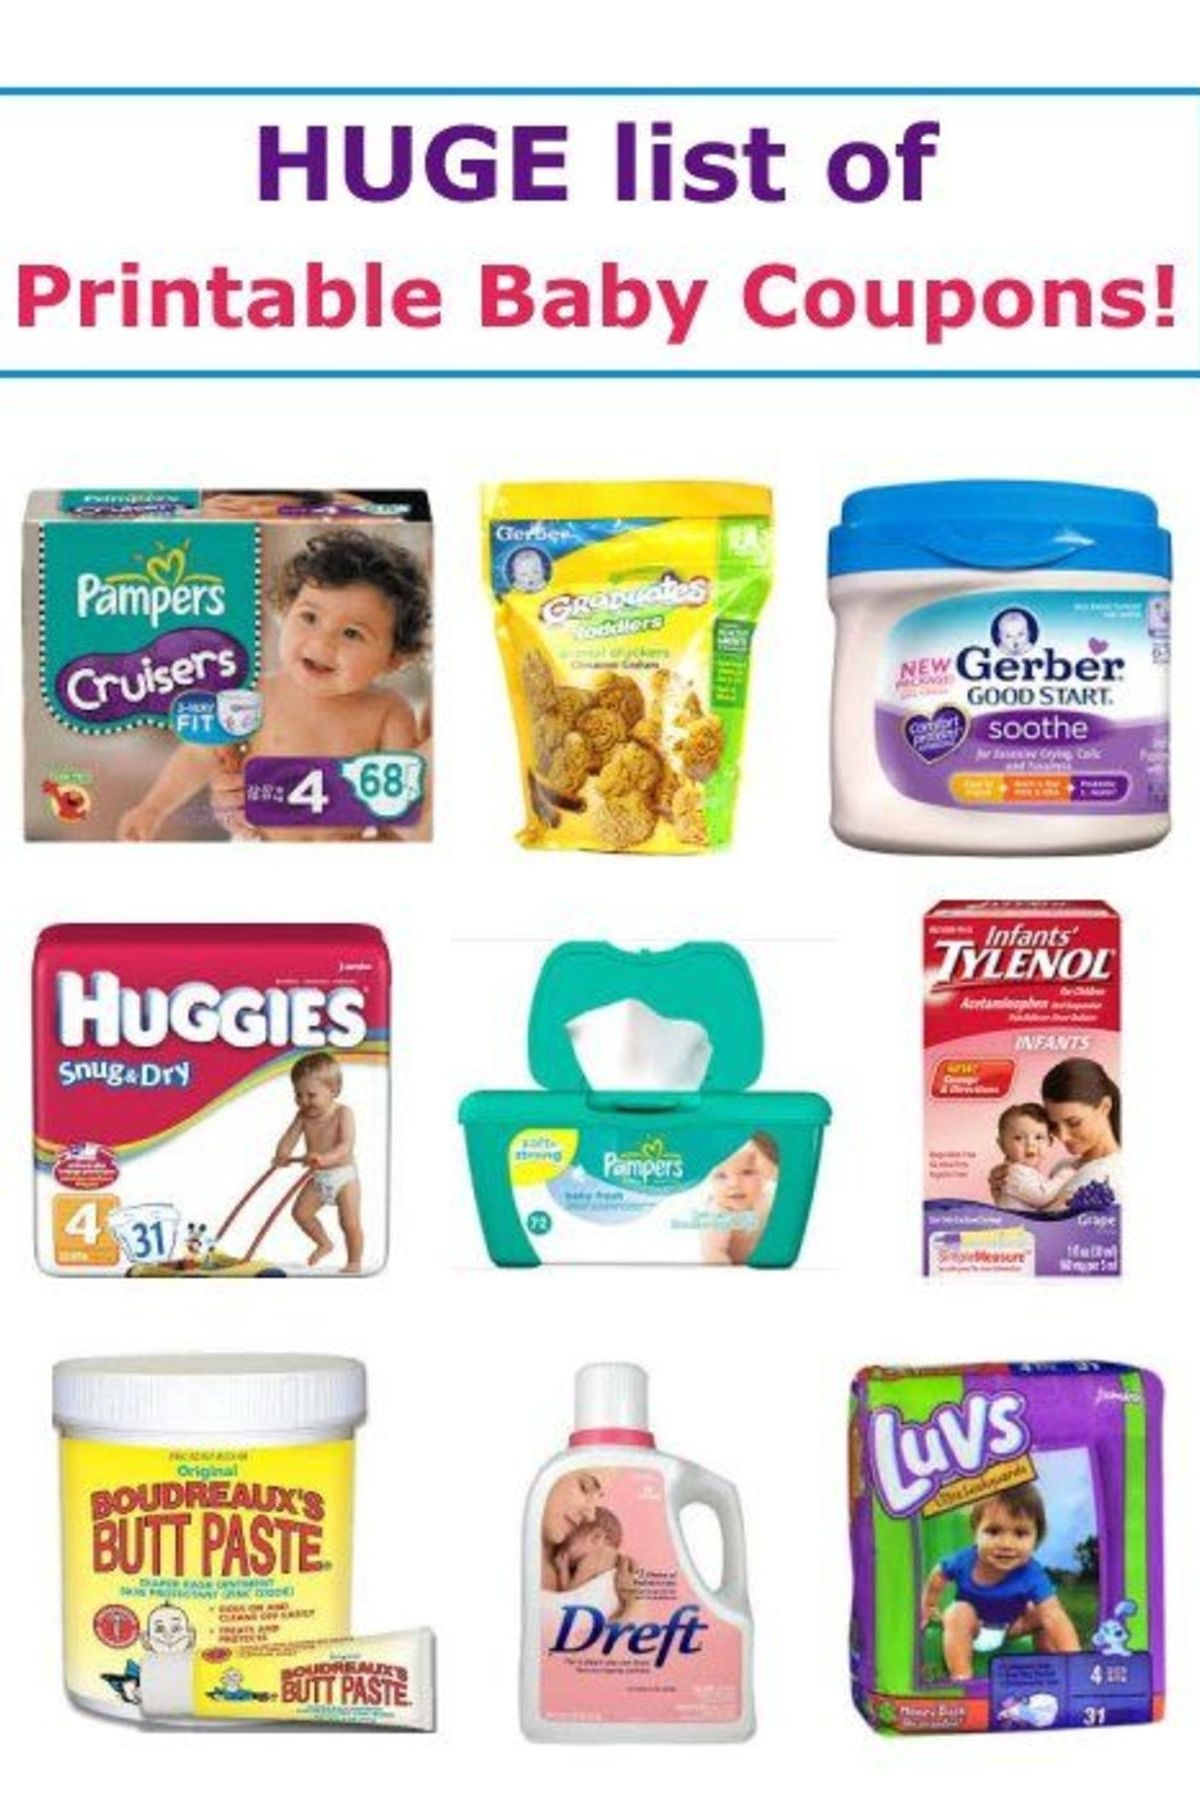 17 Printable Baby Coupons | Baby On A Budget | Baby Coupons, Baby - Free Baby Formula Coupons Printable